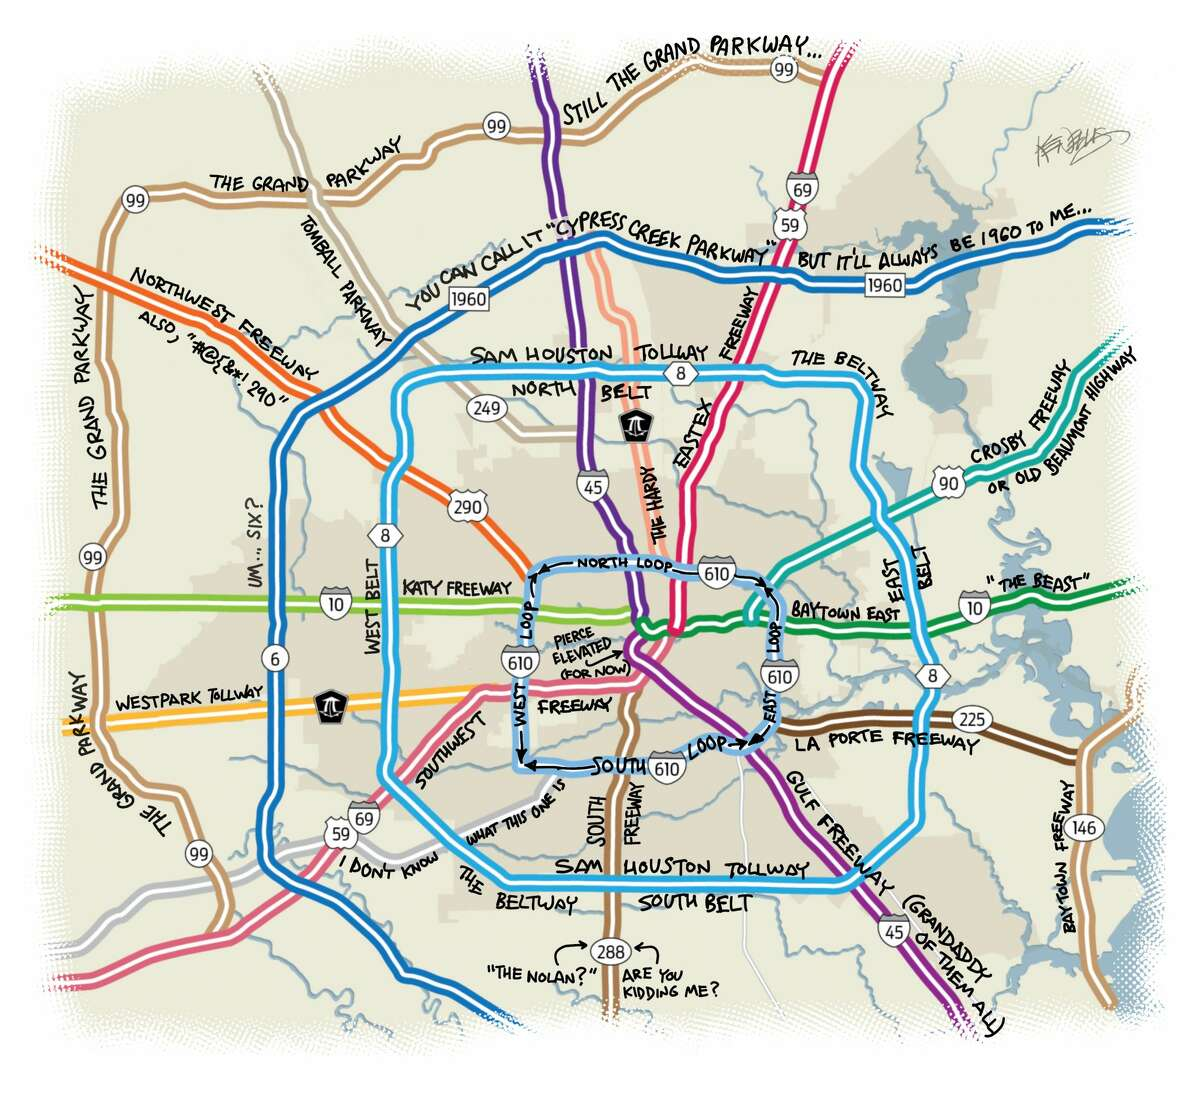 Transplant's guide to Houston's main roadways and arteries.